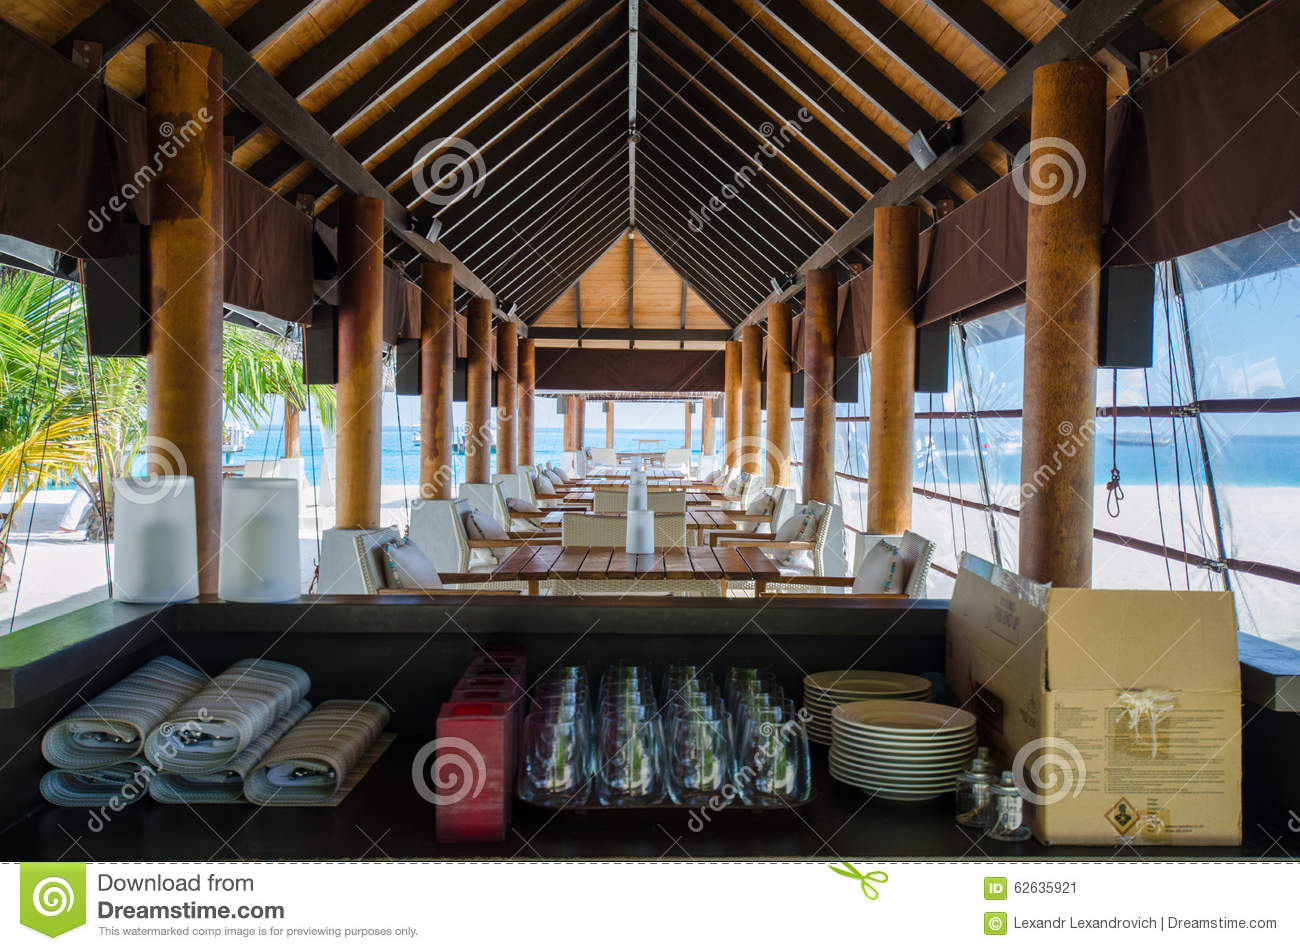 tropical restaurant setup stock photo - image: 62635921